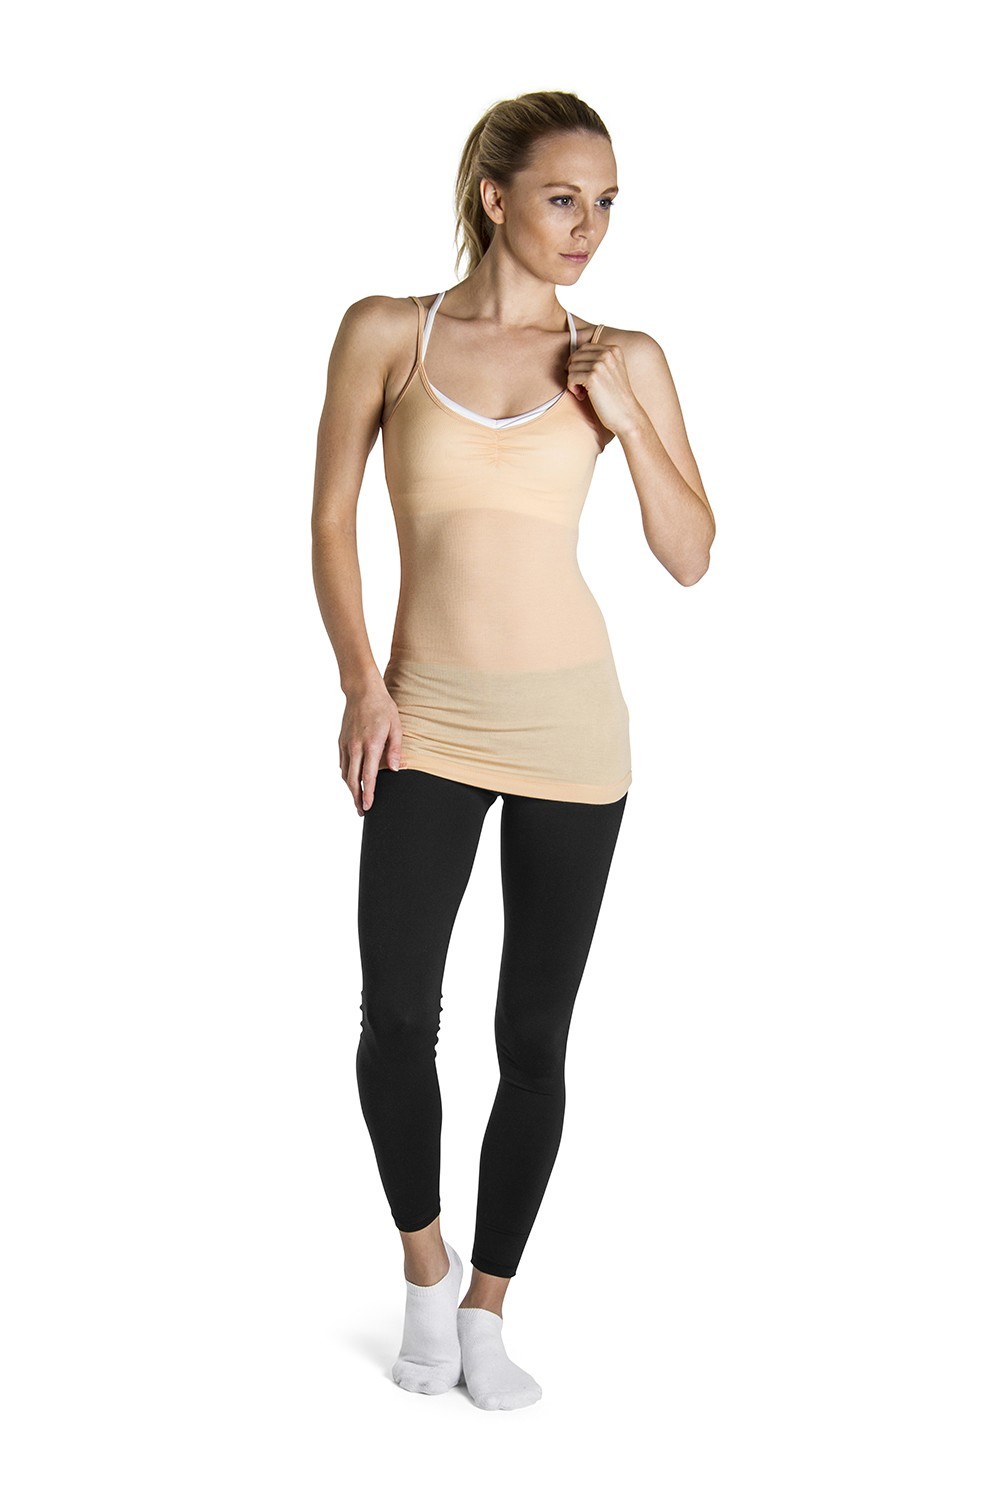 Rib Camisole Top Women's Tops